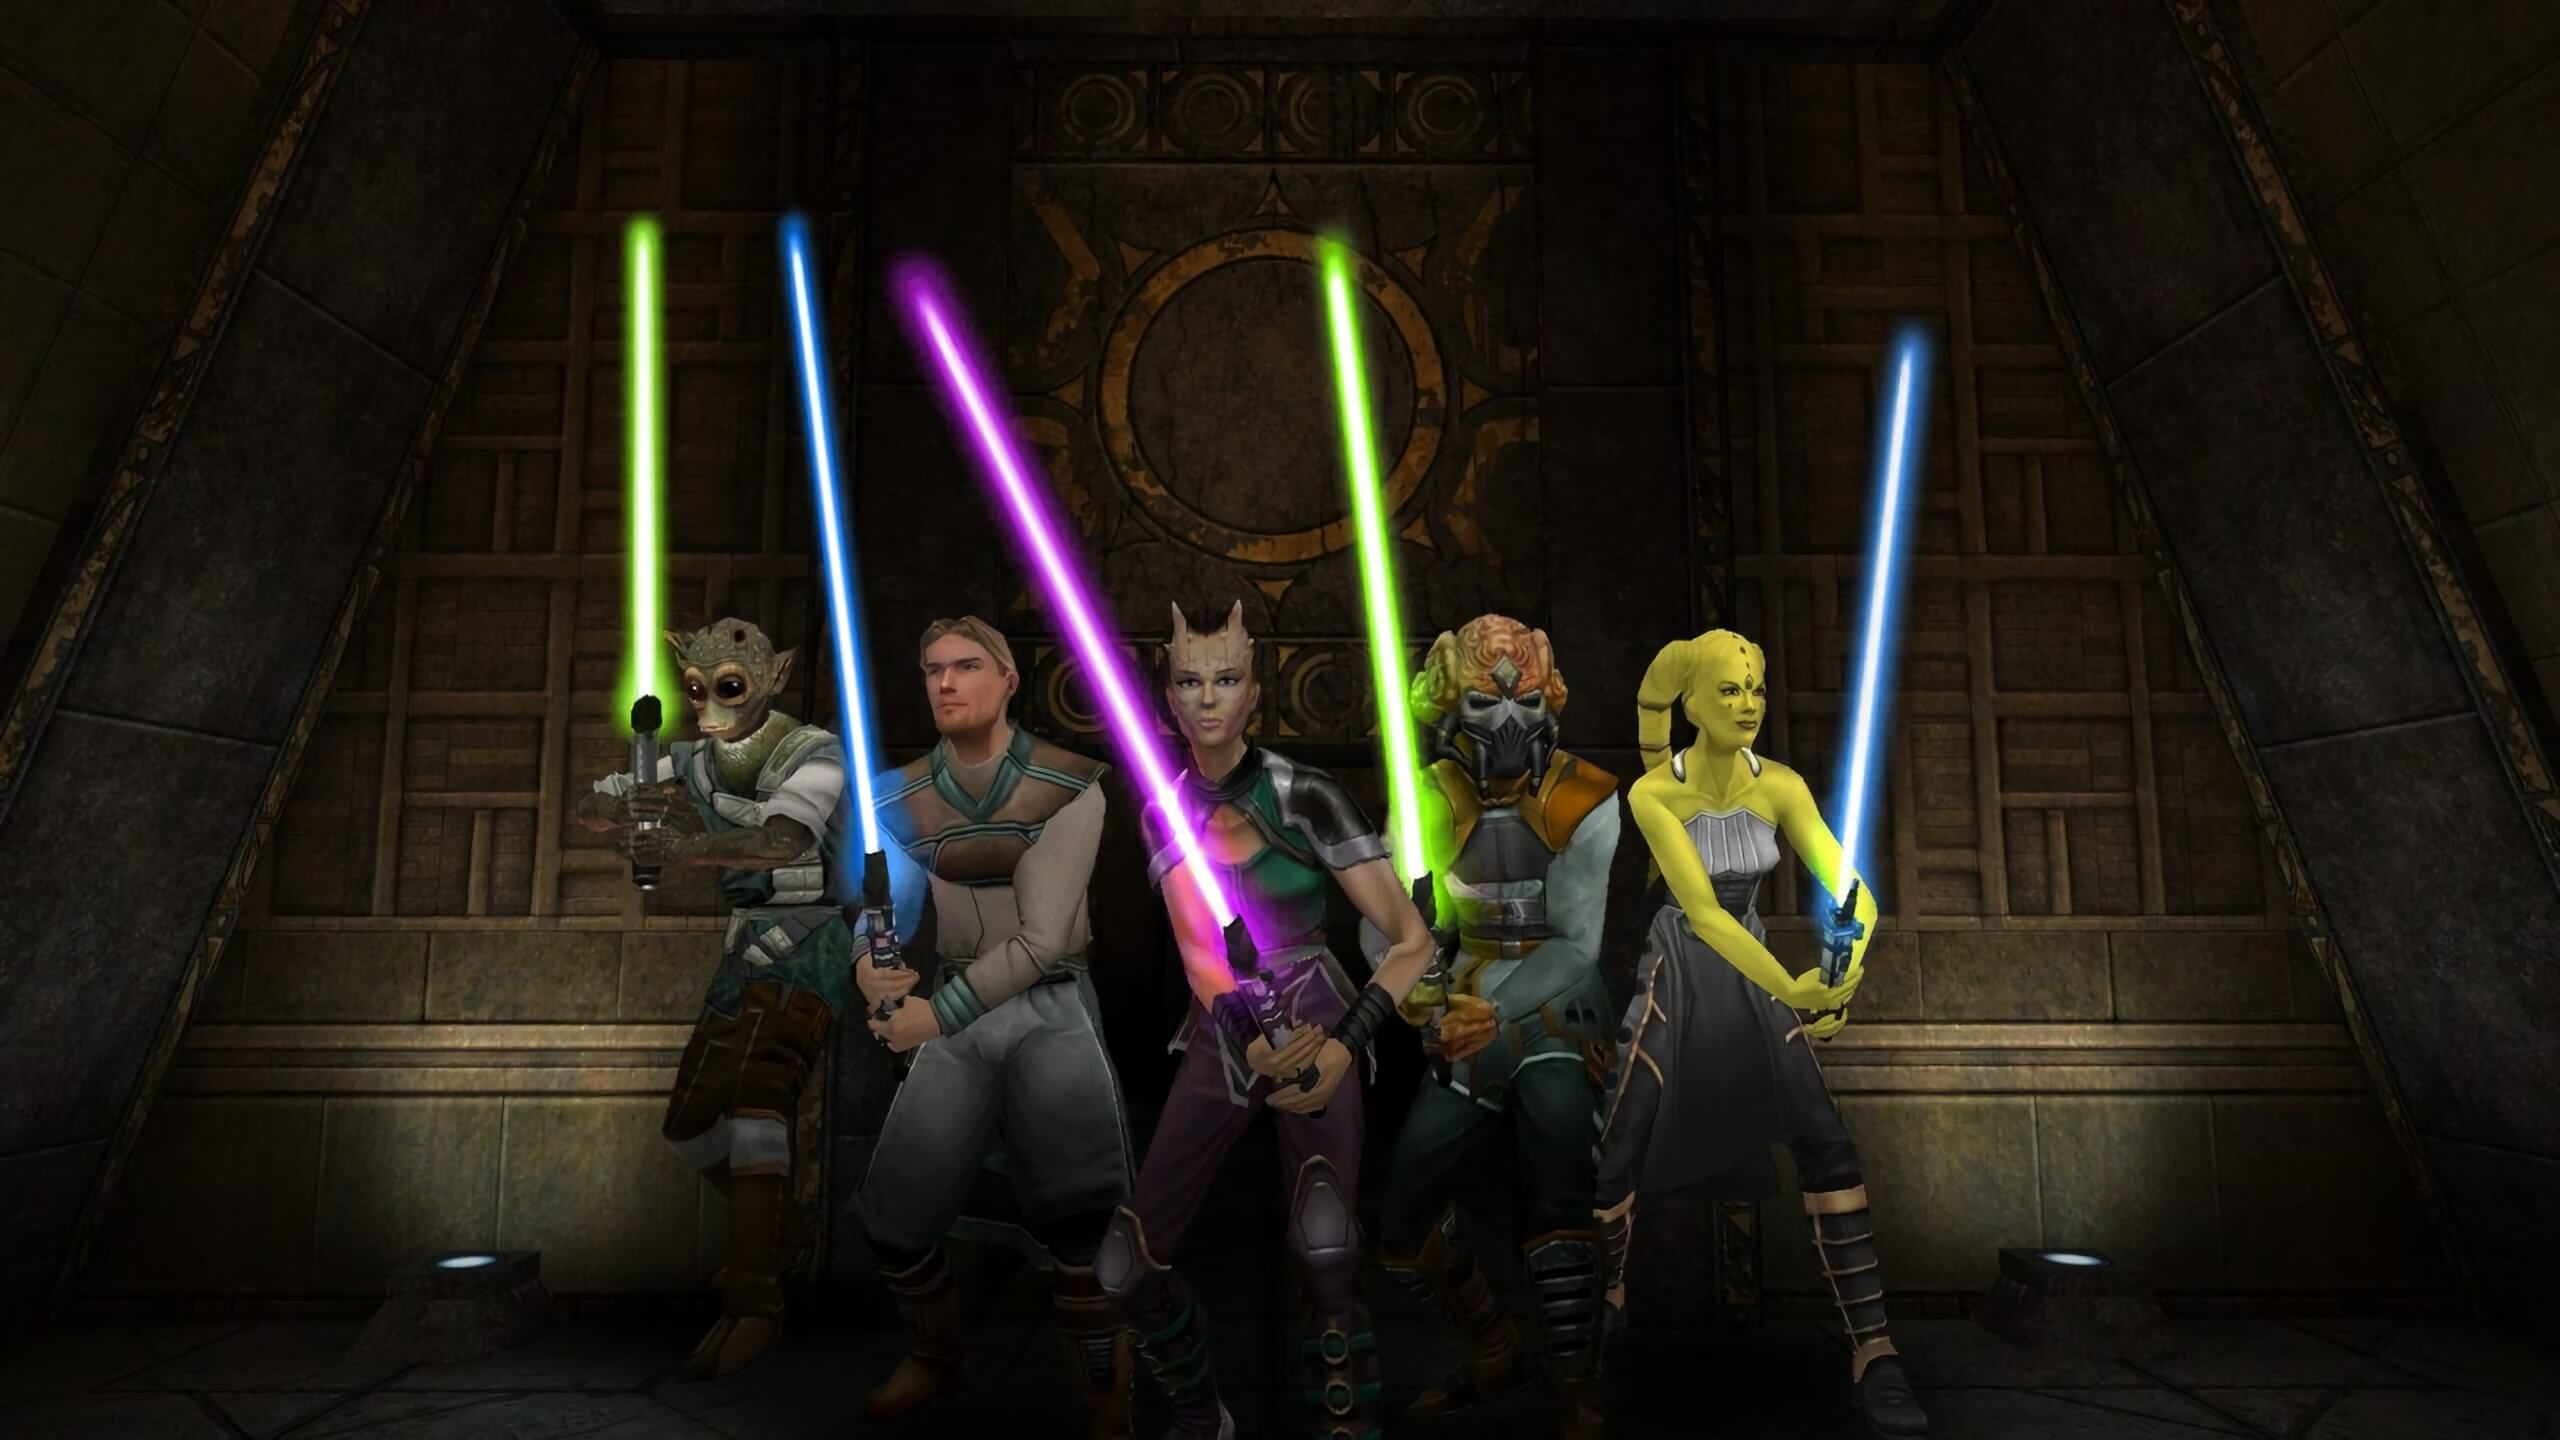 Jedi Academy Switch studio intends to fix an oversight that allows PC players to wipe the floor with Switch users screenshot